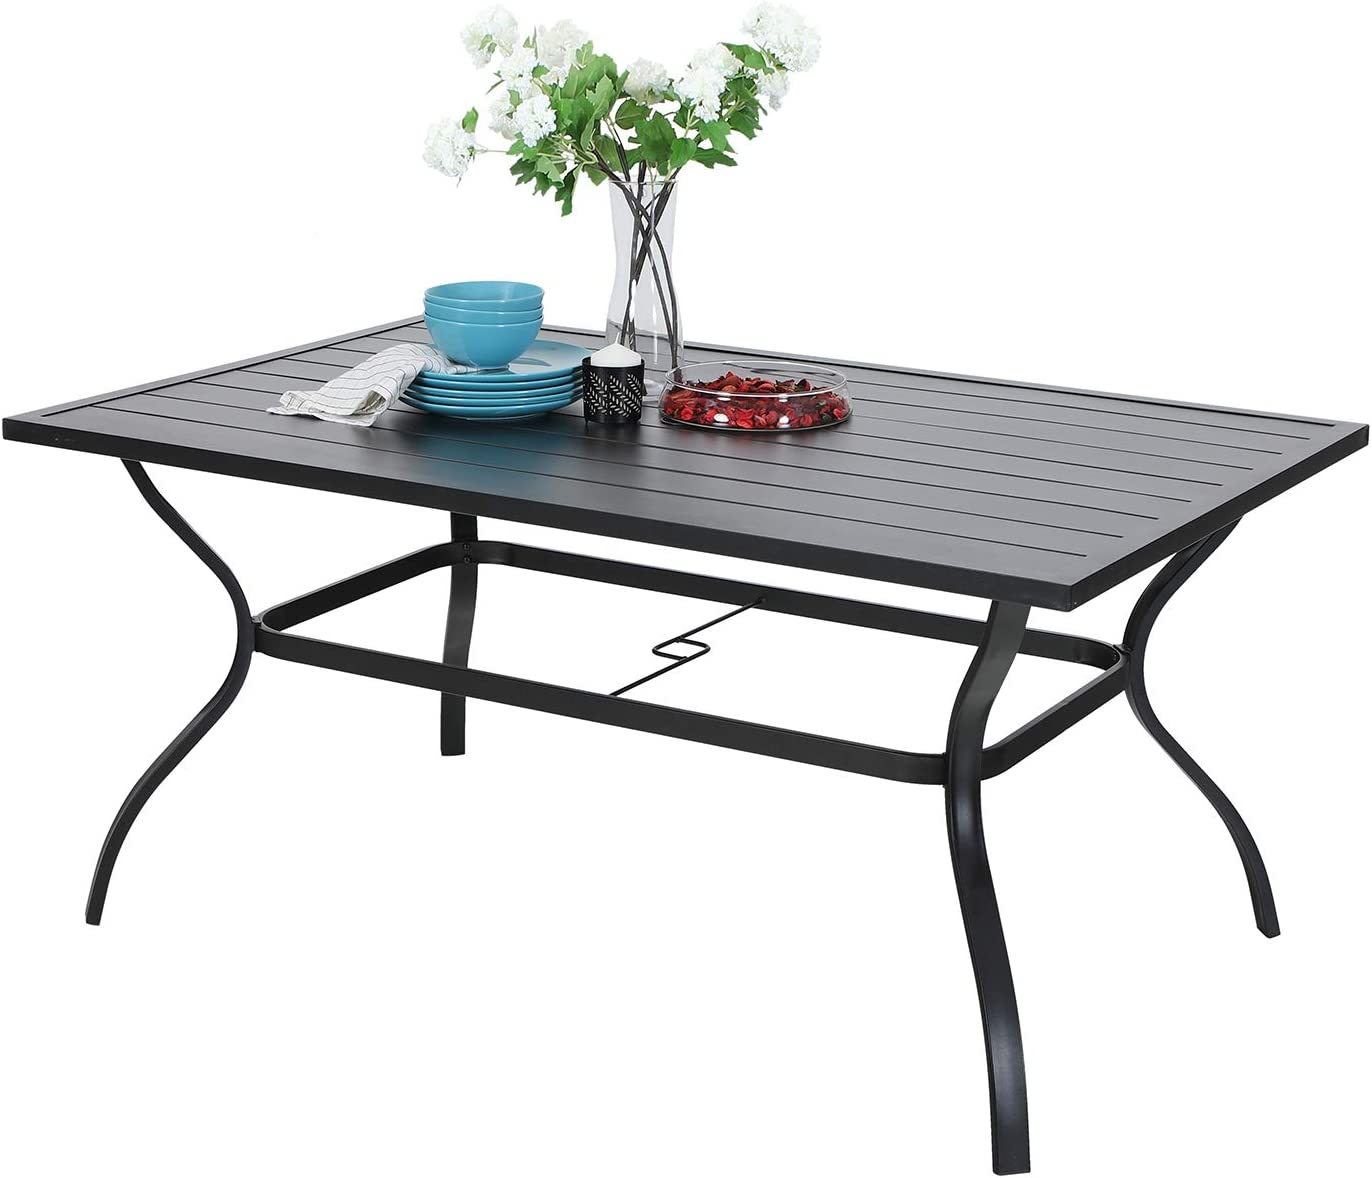 MF Outdoor Metal Dining Table Garden 6 Person Umbrella Table for Lawn Patio Pool Sturdy Steel Frame Weather-Resistant Coffee Bistro Table Black 1 Table